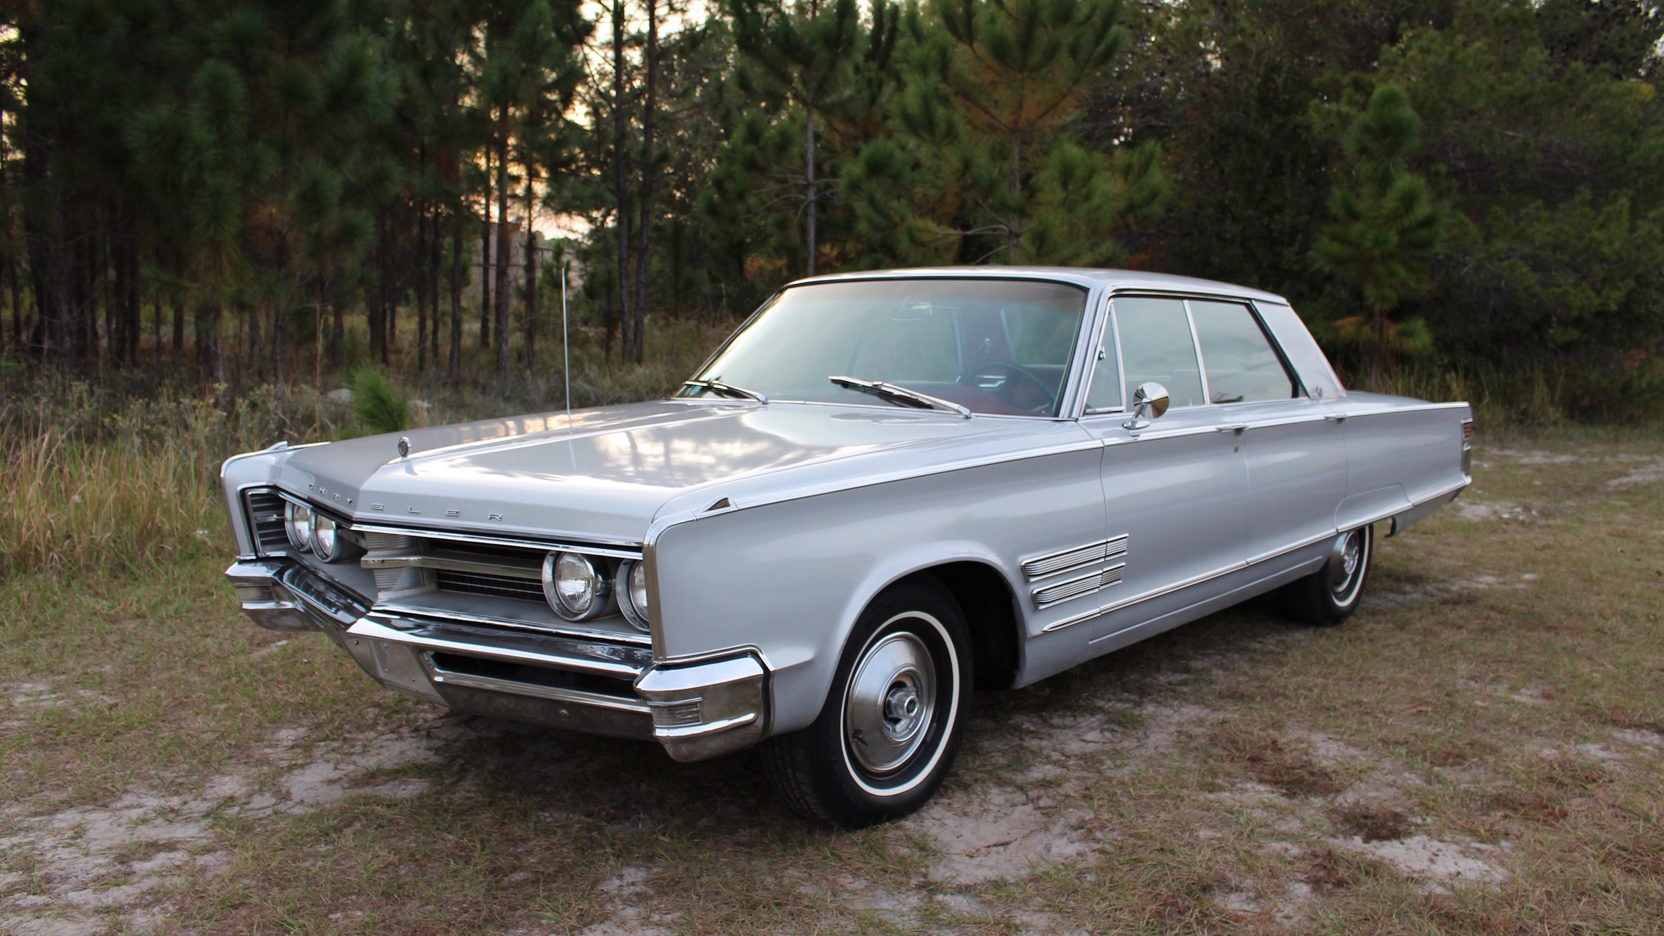 medium resolution of 1966 chrysler 300 g110 1 kissimmee 2017 rh mecum com at 1966 chrysler 300 1 full